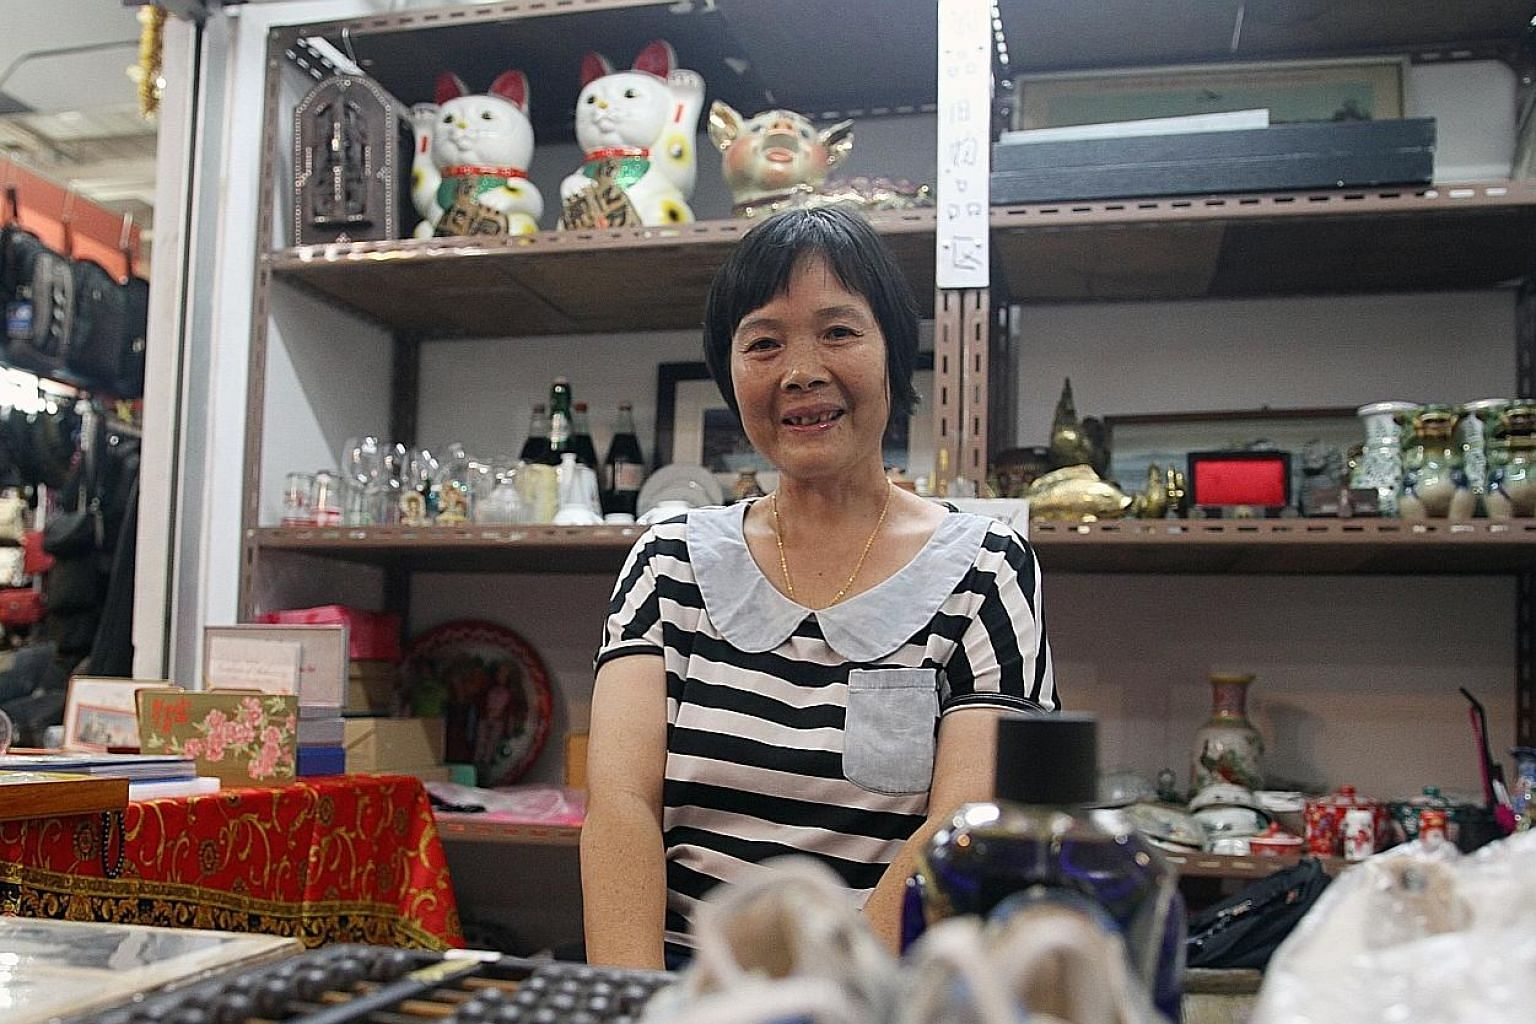 Madam Tan Guo Mei at her new stall at Chinatown Market. She is one of the beneficiaries of the assistance provided to Sungei Road vendors. Besides selling second-hand collectibles, she has started selling new shoes at her stall, which opened for busi